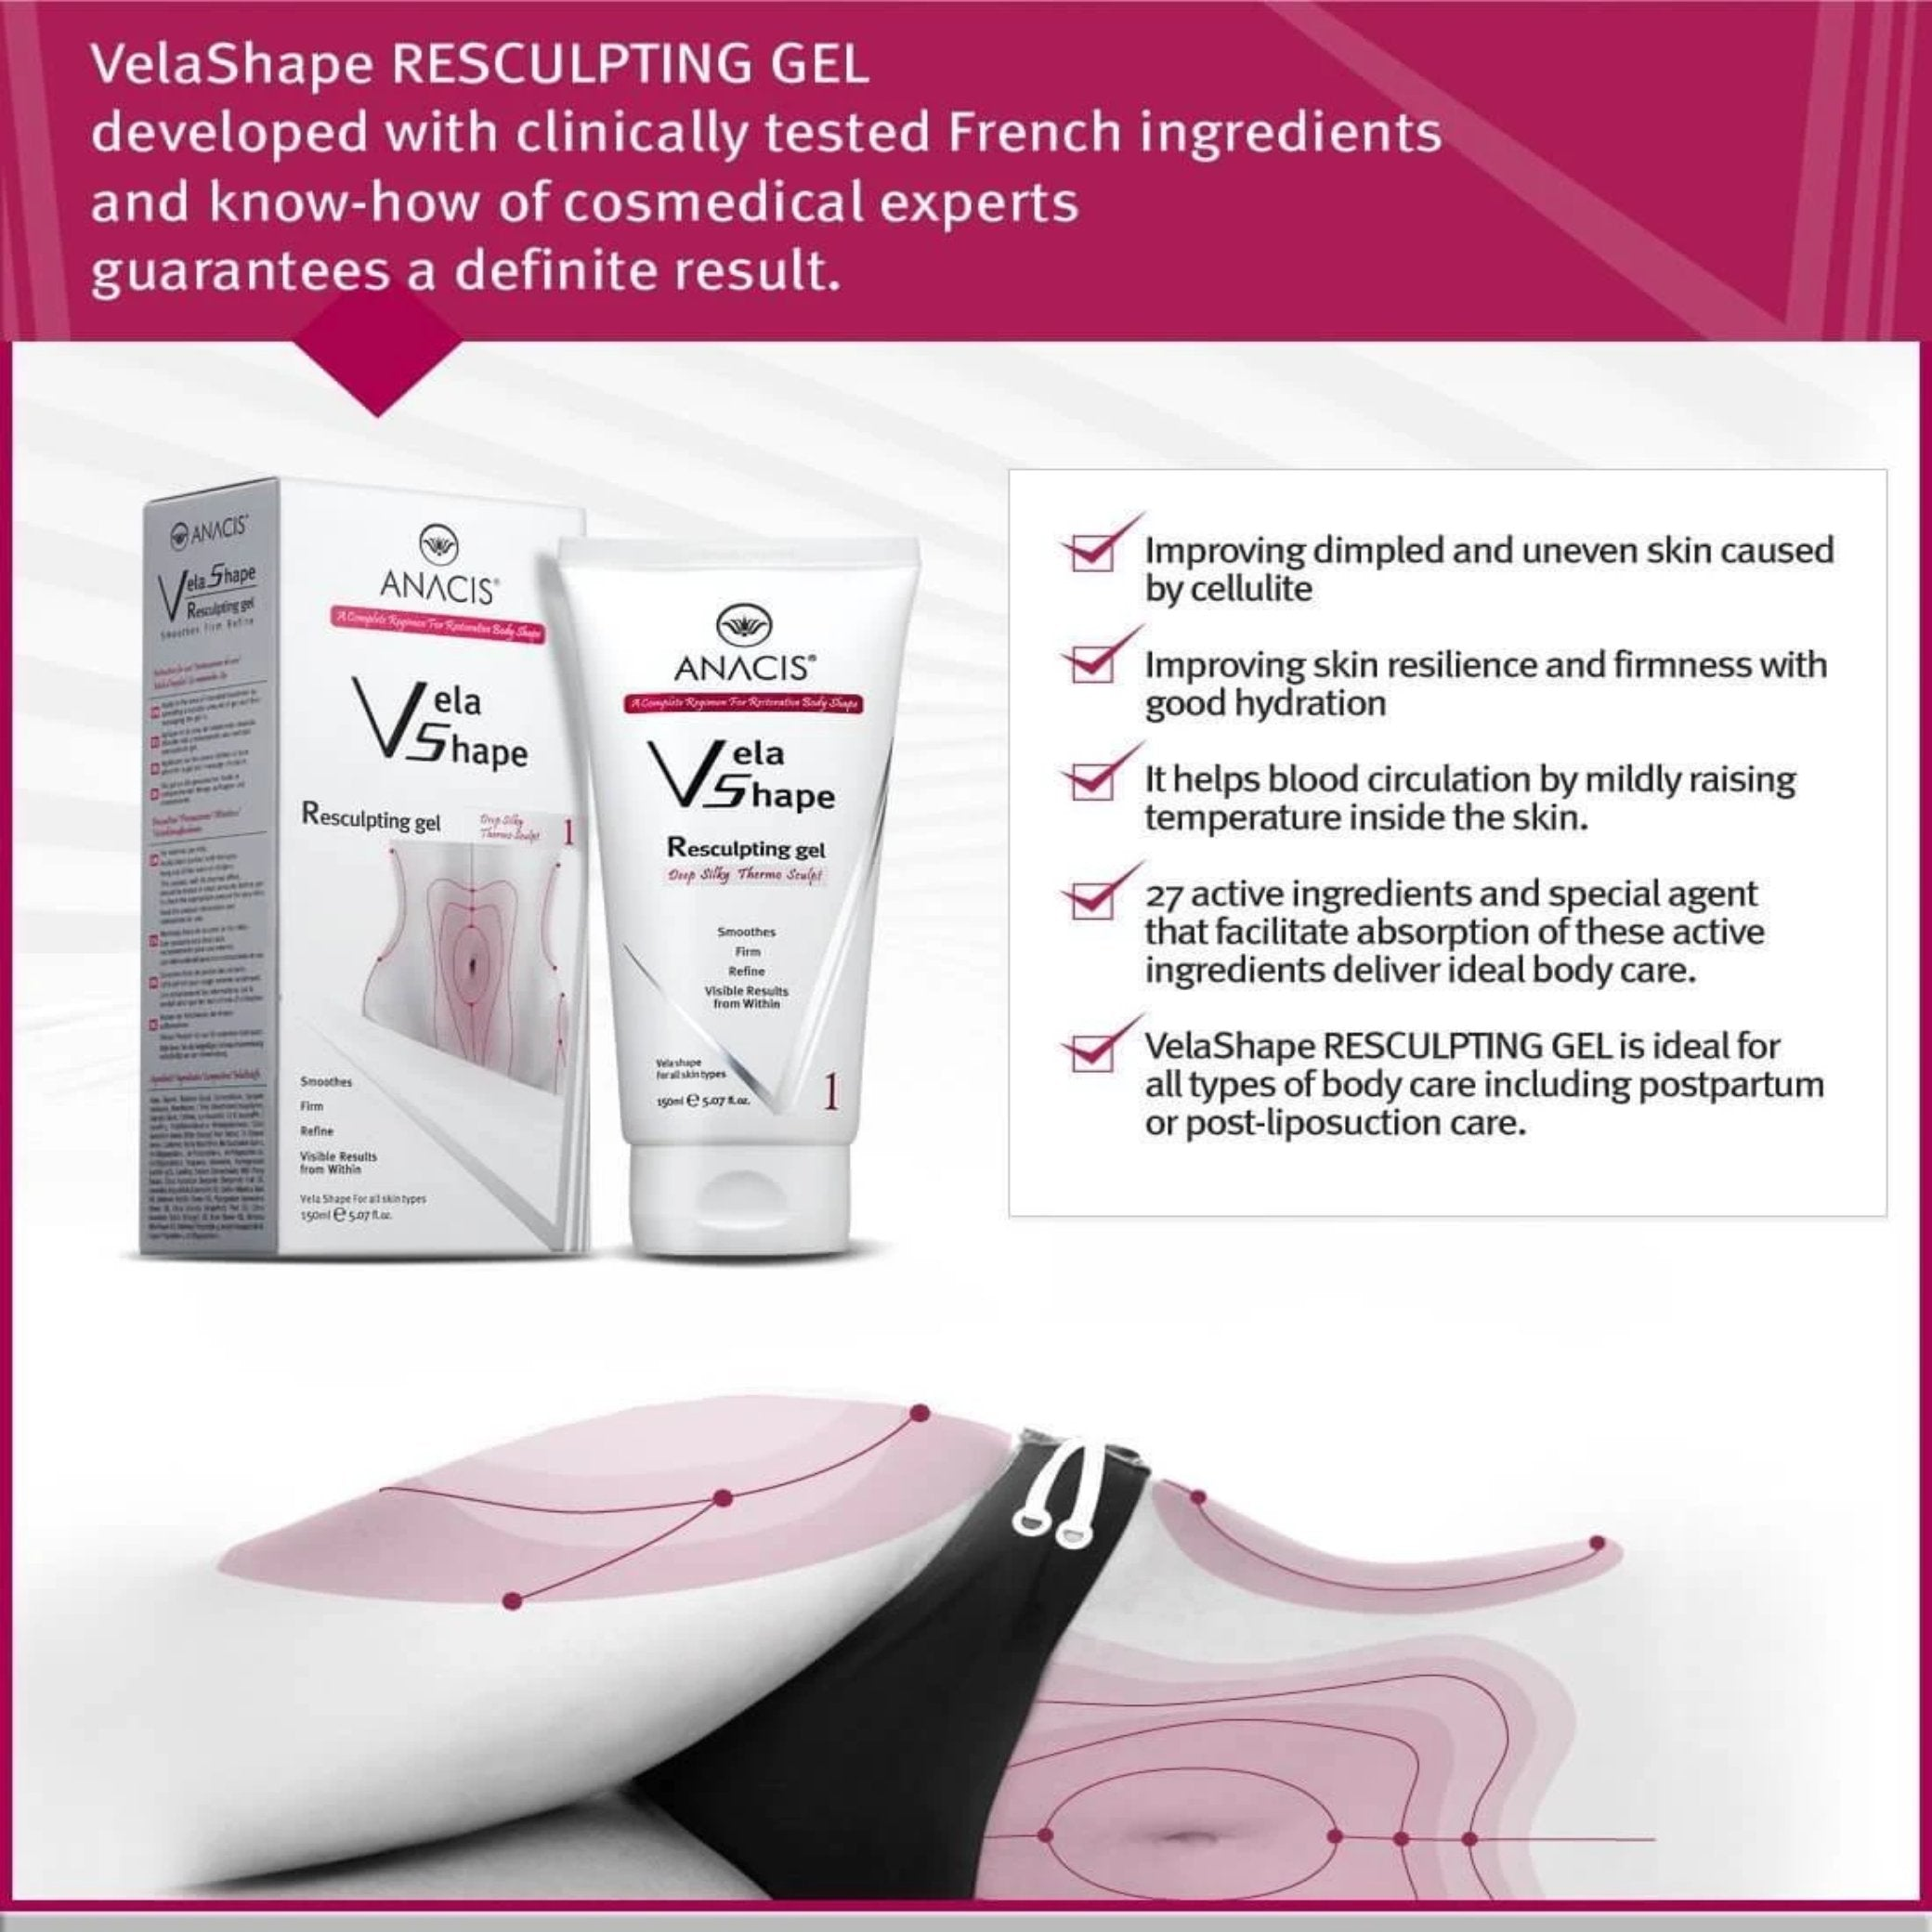 Get rid of the stubborn dimpled skin Relieve uneven skin - Medactiveshop